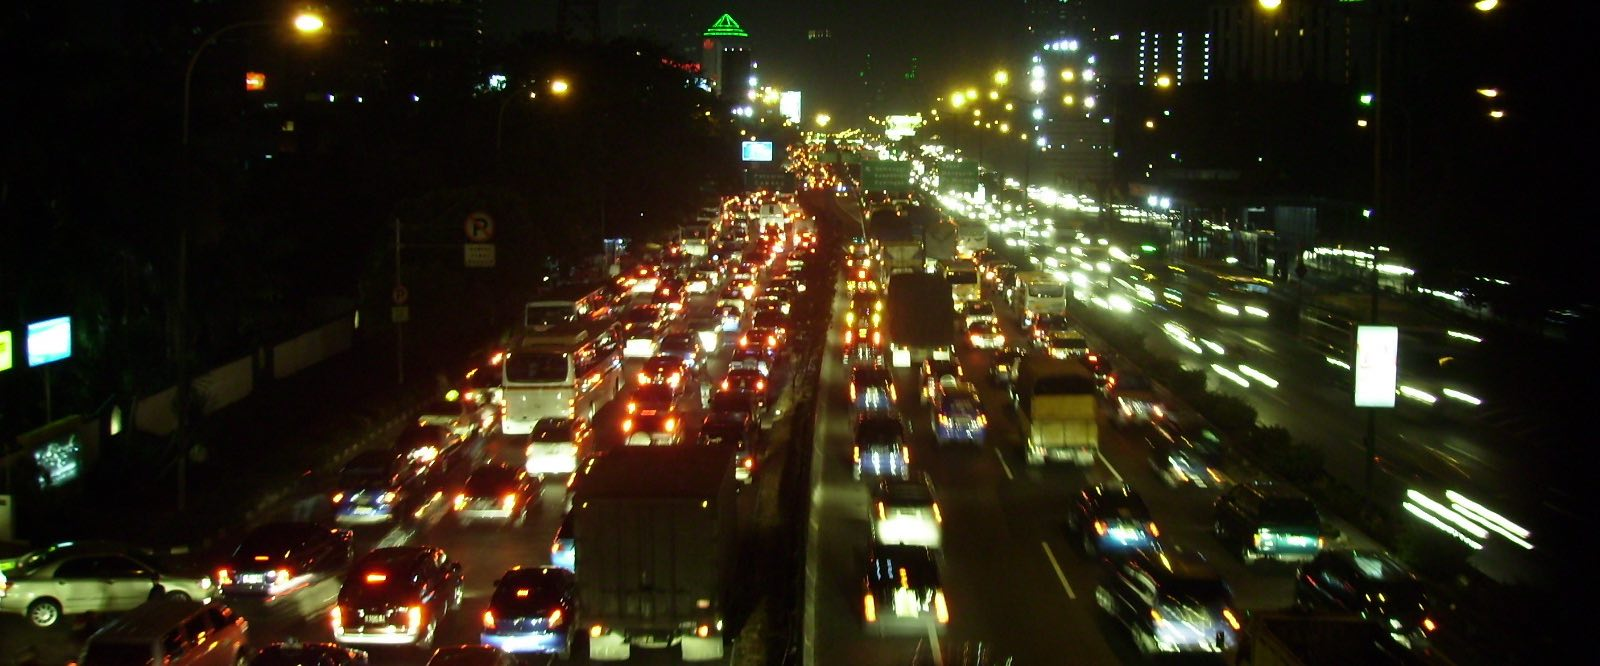 Traffic flows, Jakarta (Photo: basibanget/Flickr)